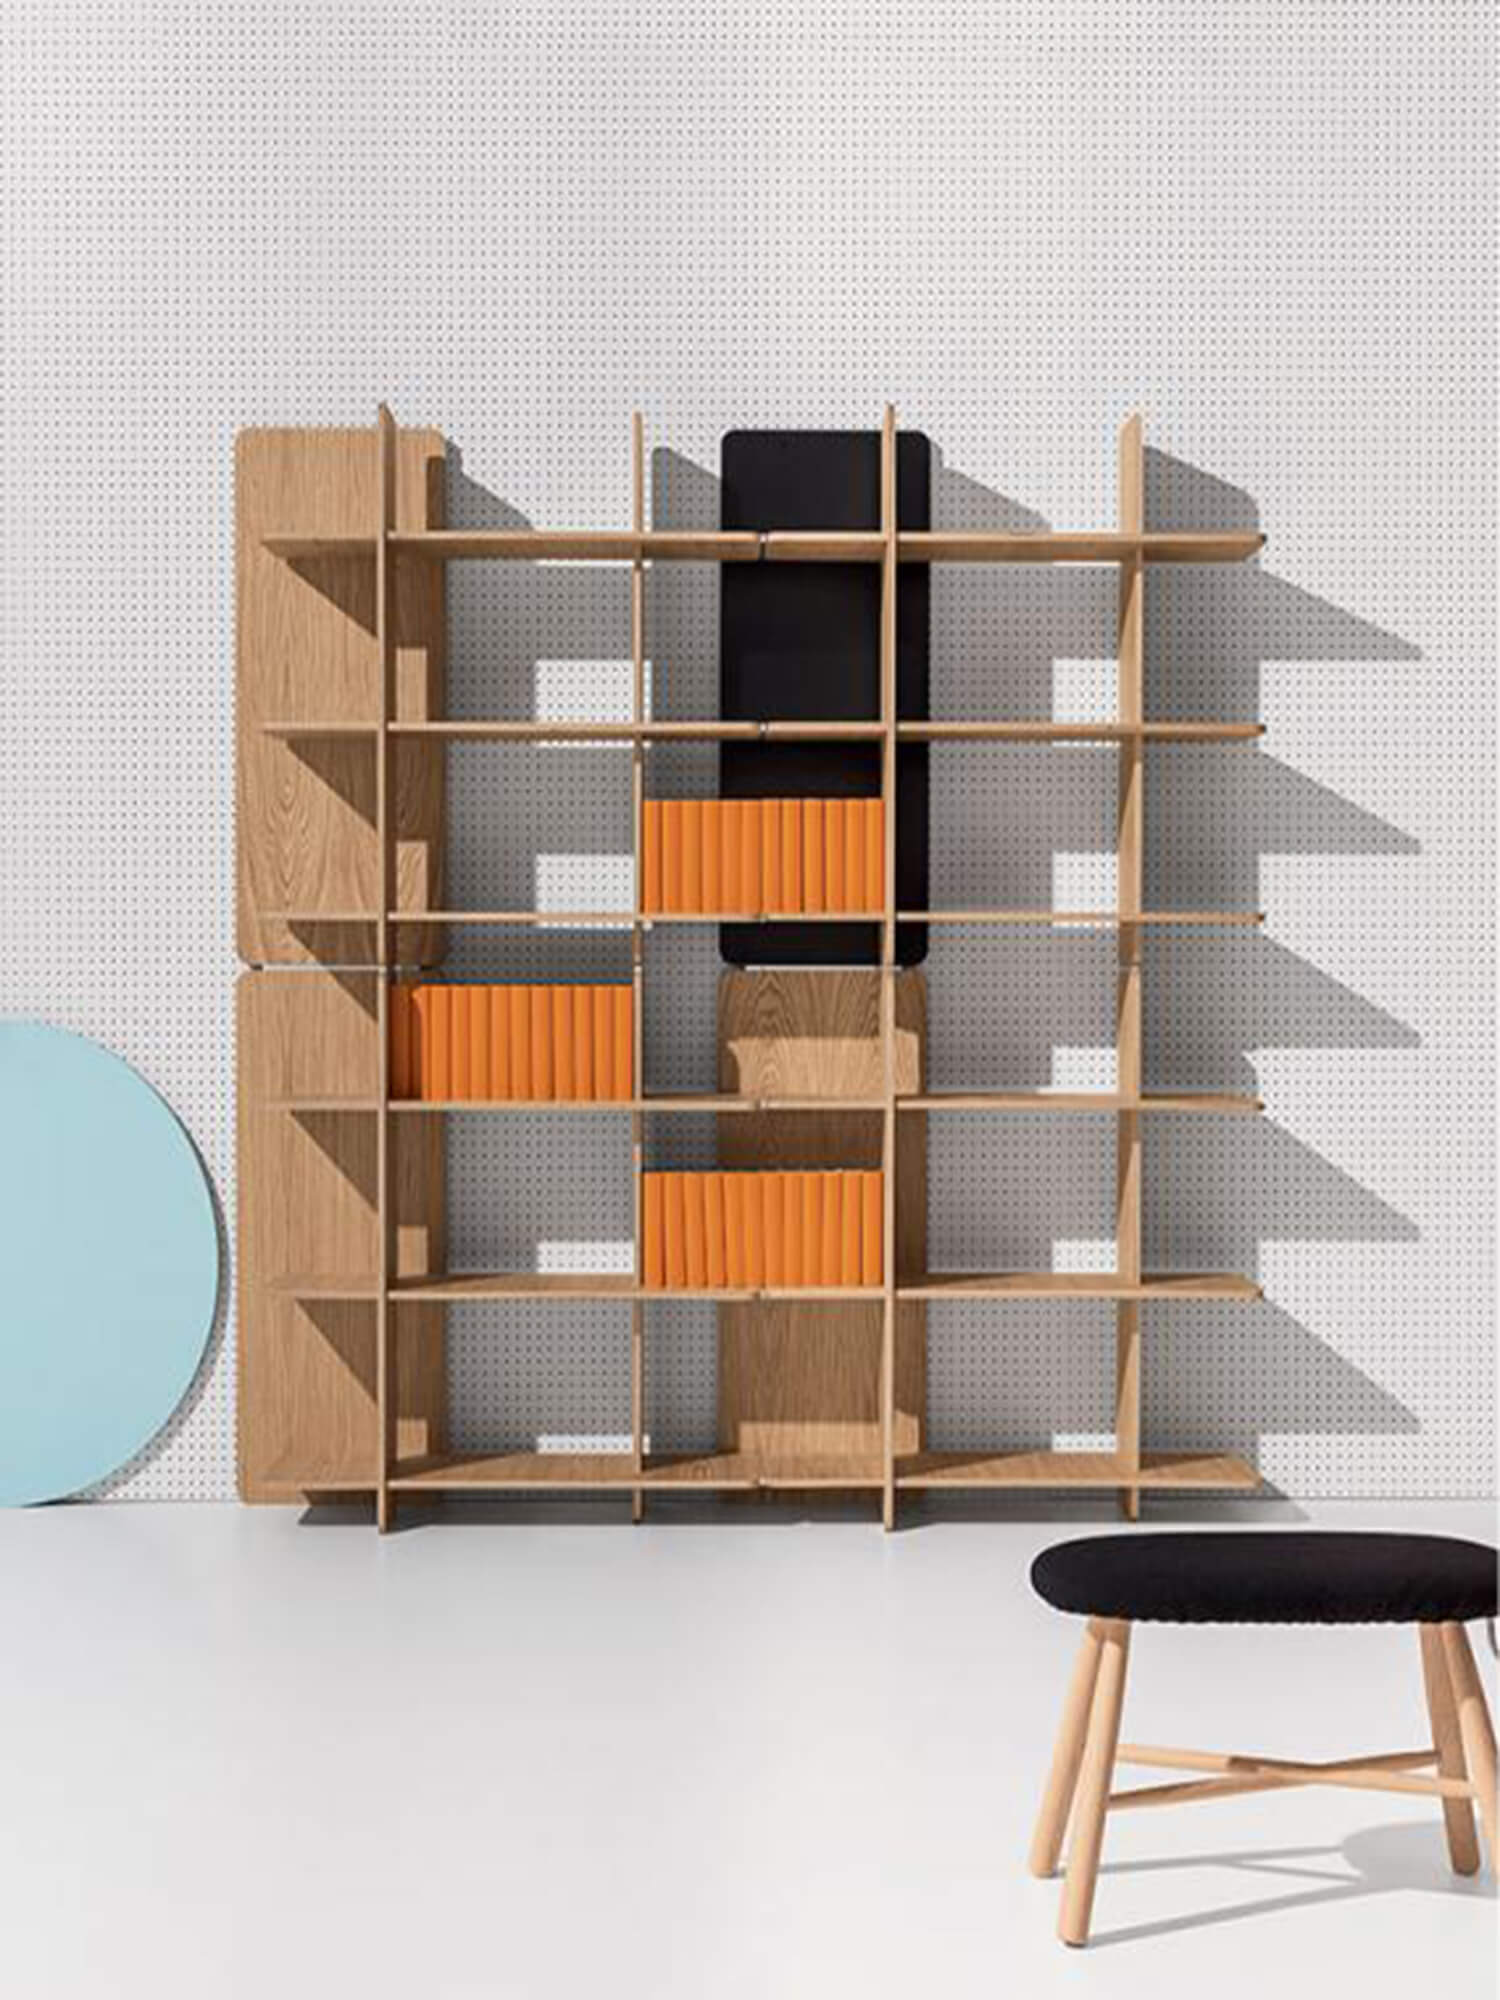 Axis Shelving Discipline design01